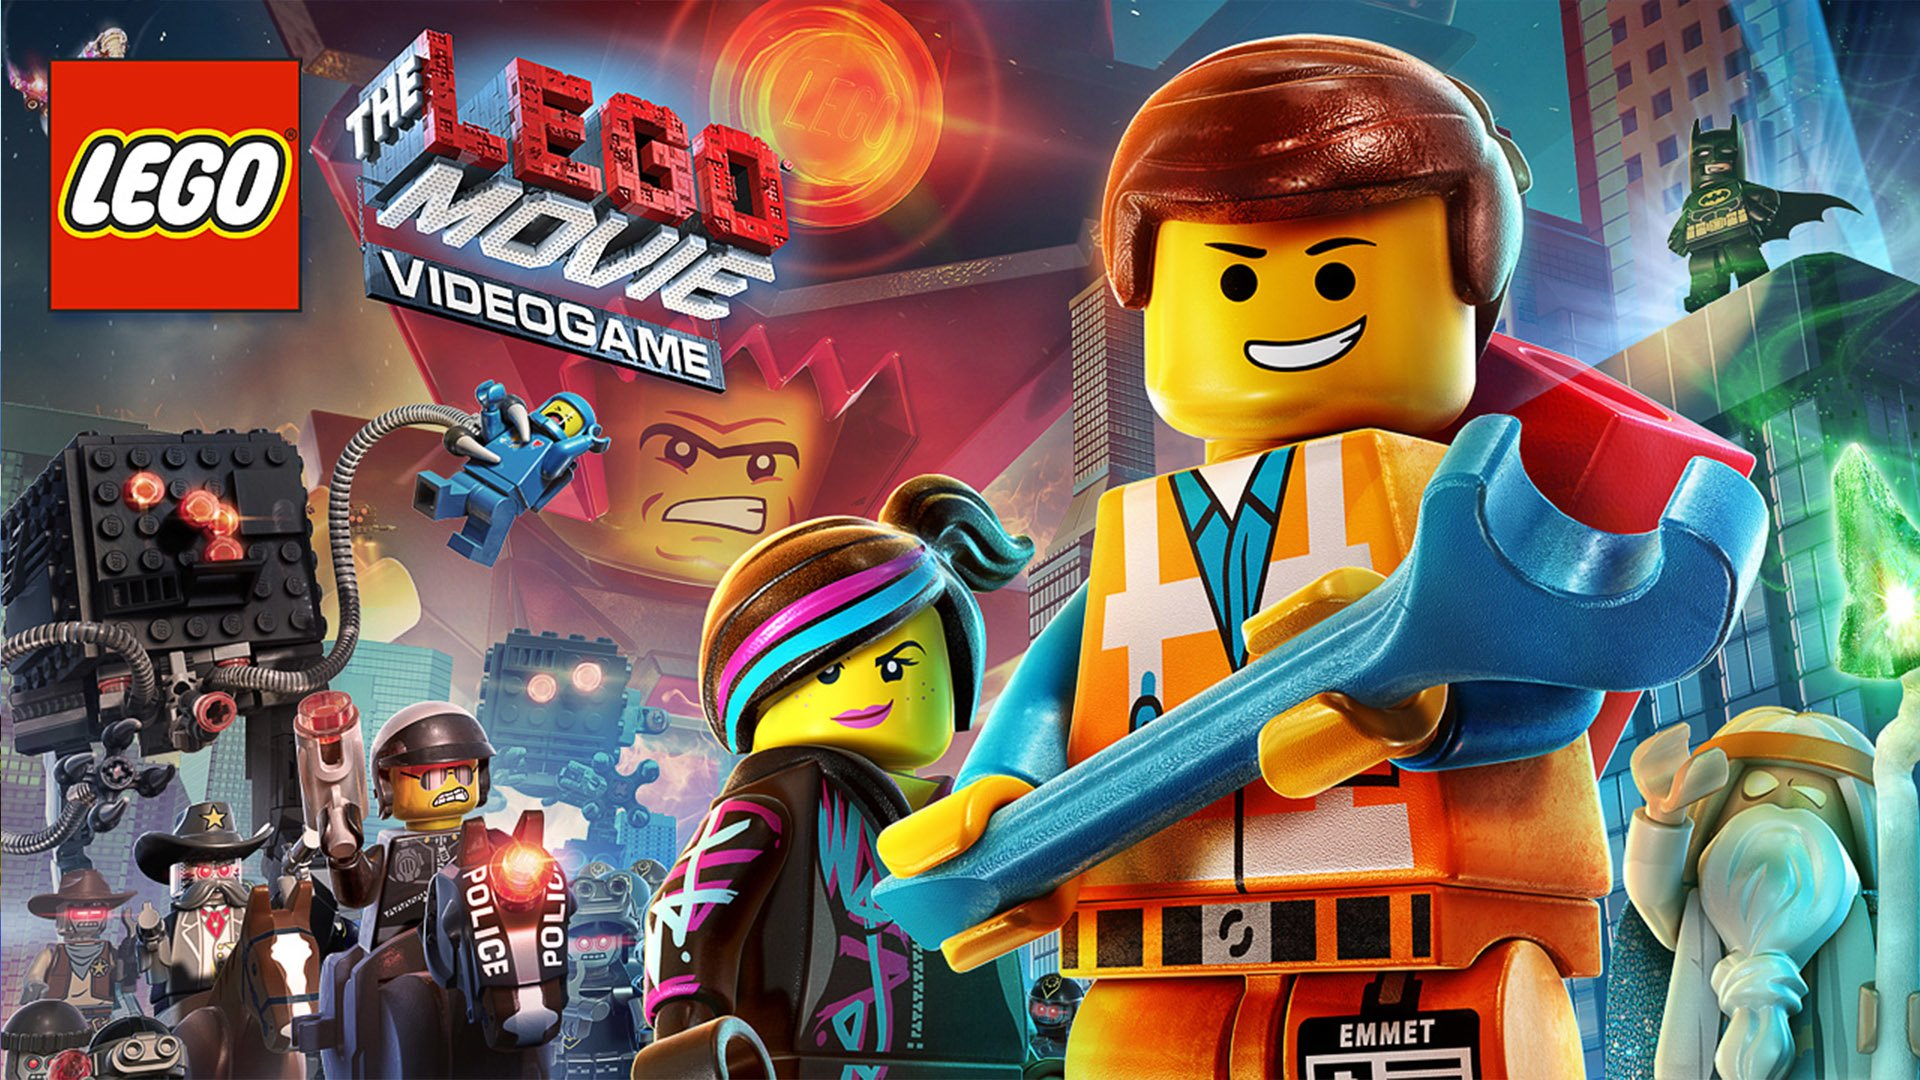 The LEGO Movie Videogame Full HD Wallpaper and Background